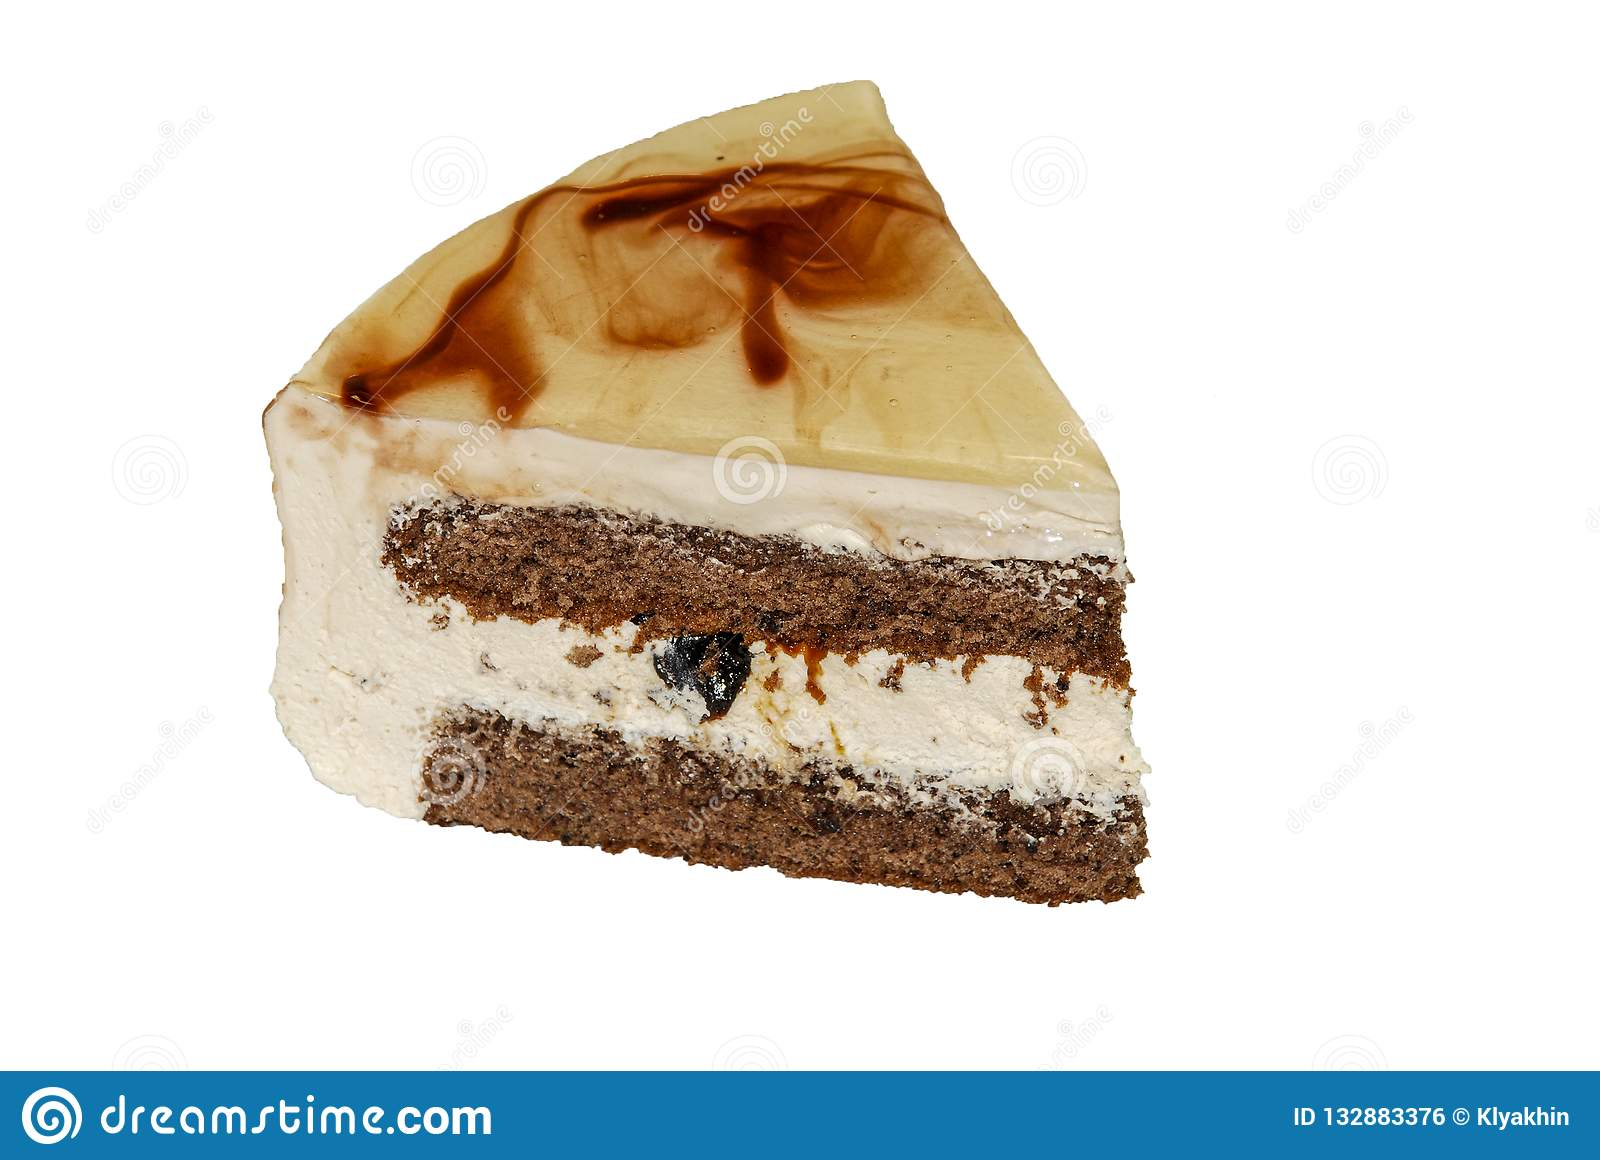 Piece of cake with cream and prunes